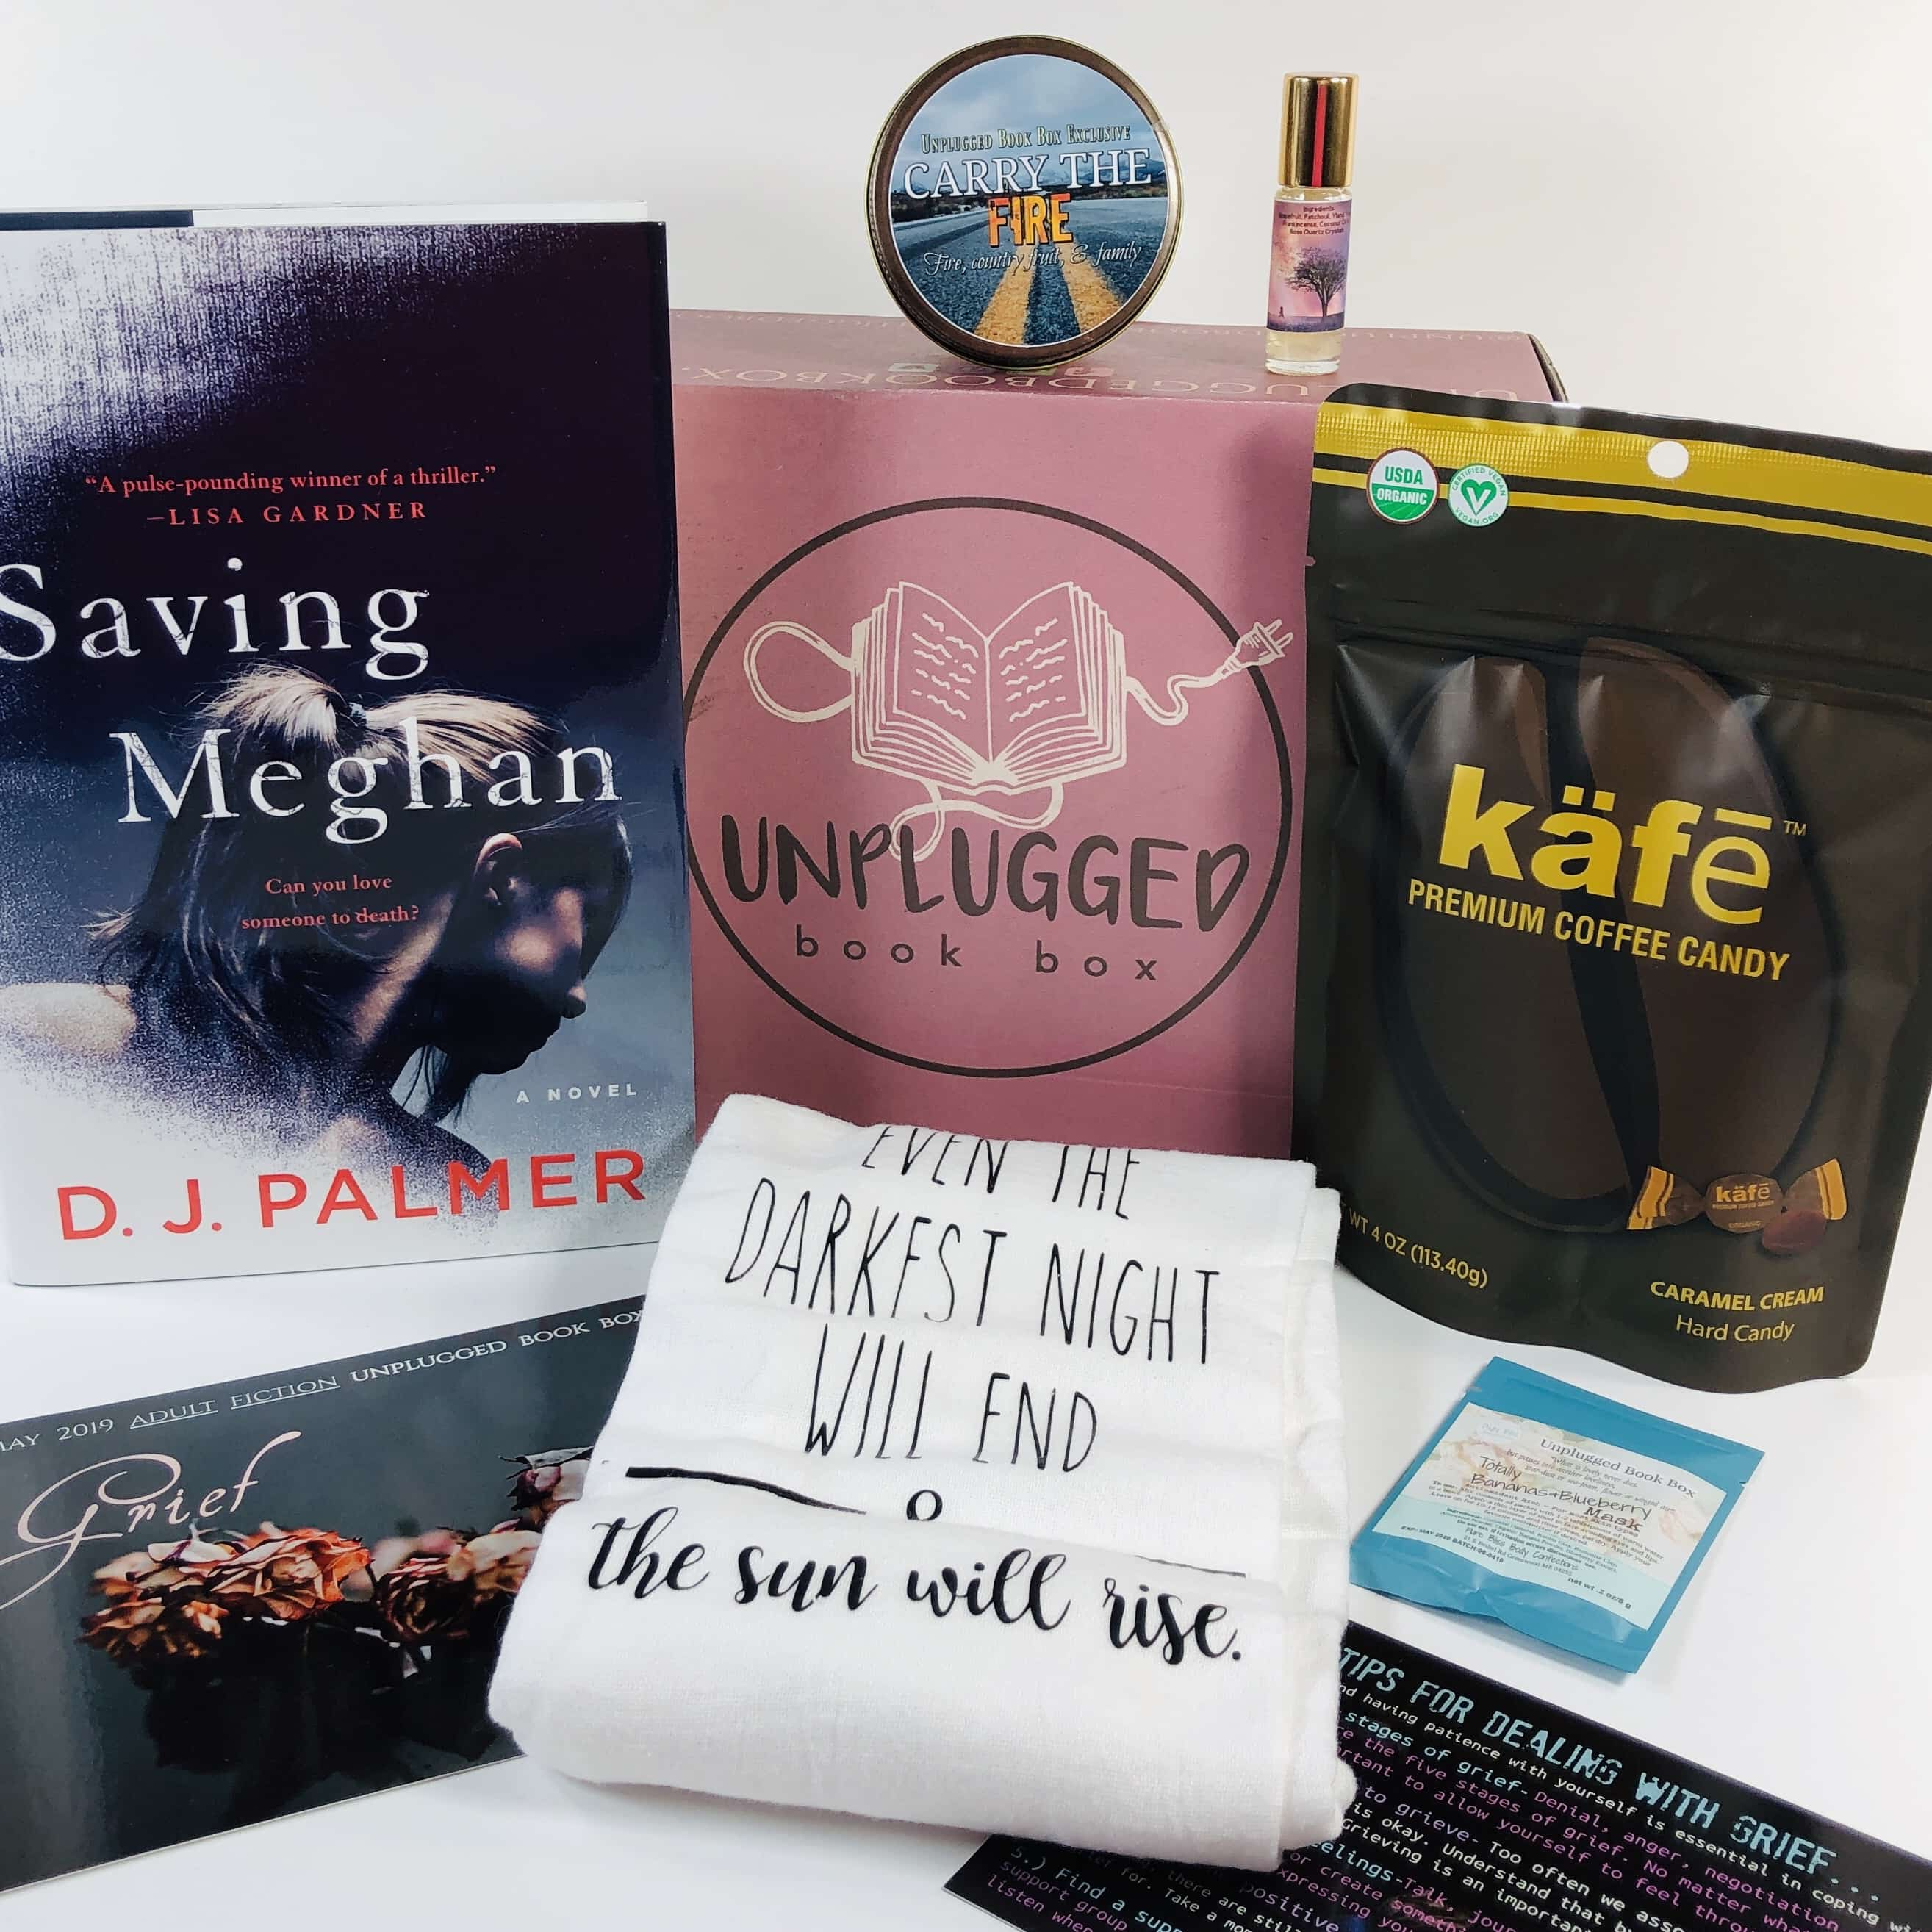 Unplugged Book Box May 2019 Adult Fiction Subscription Box Review